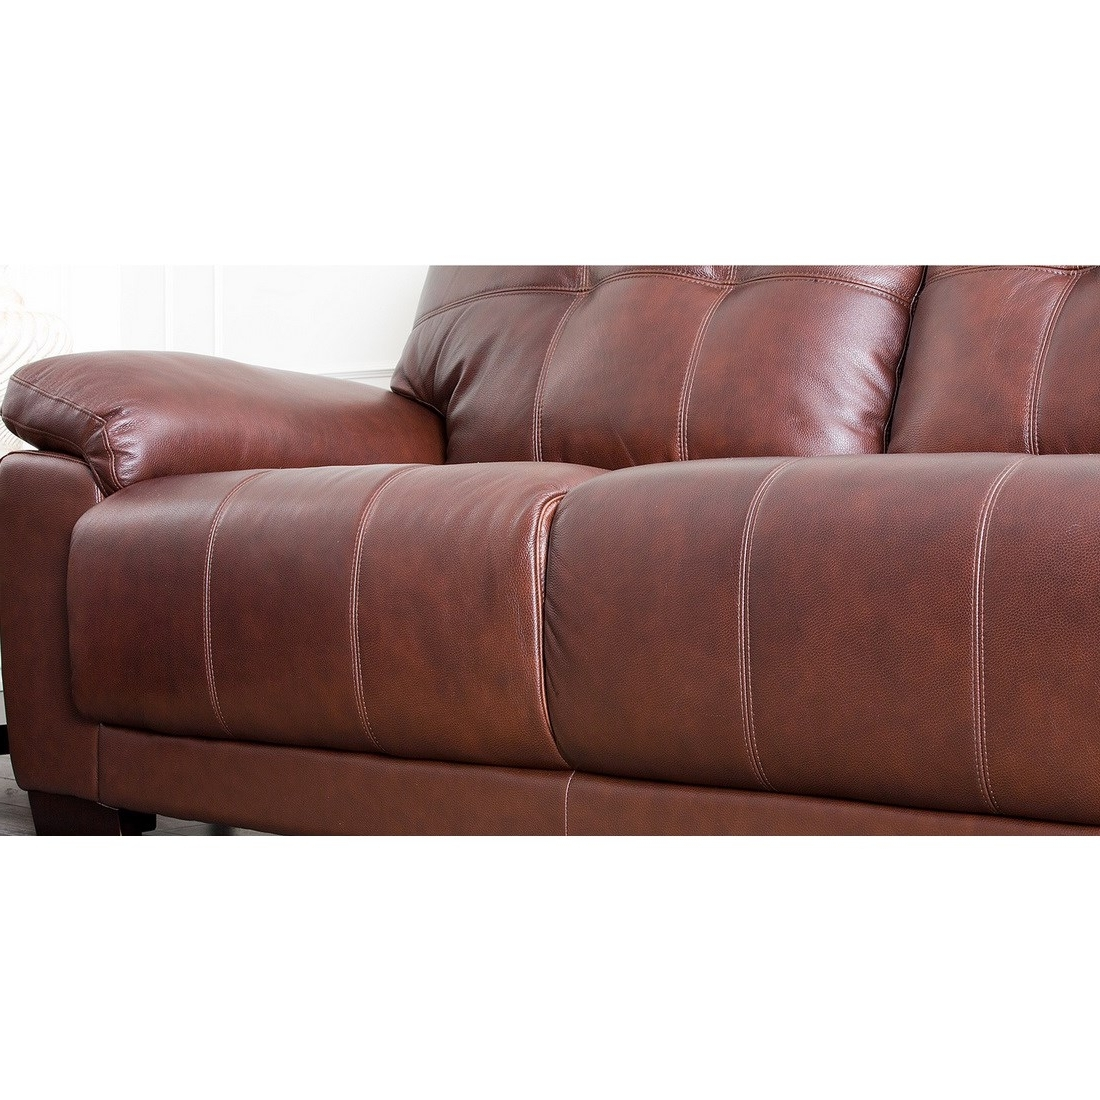 Latest Florence Leather Sofas For Abbyson Living Sf 5902 Cst 3 Florence Two Tone Brown Leather Sofa (View 4 of 20)